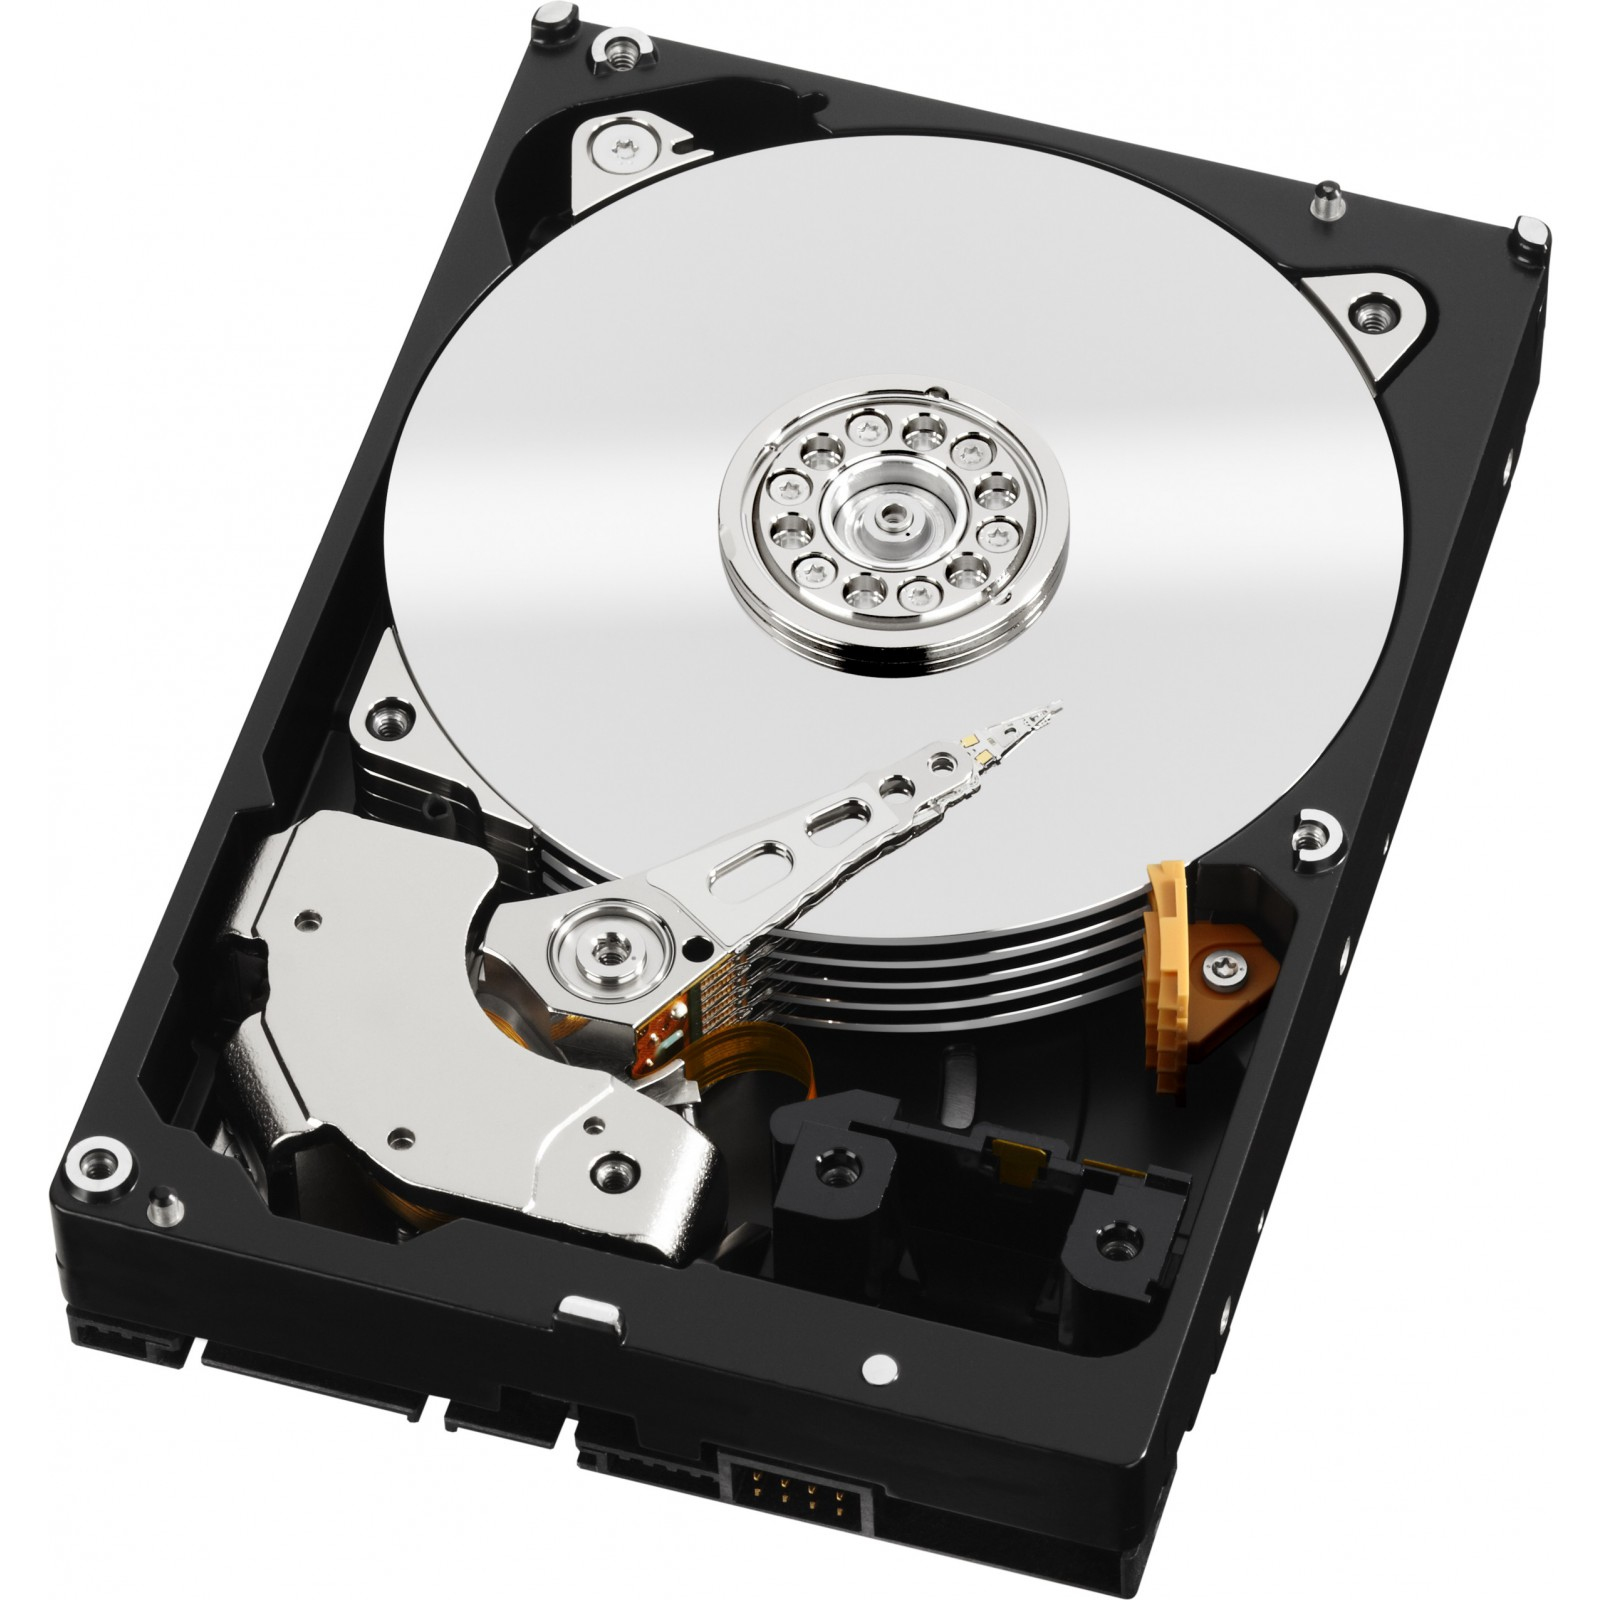 WESTERN DIGITAL RE 2TB 2000GB SERIAL ATA III INTERNAL HARD DRIVE REFURBISHED